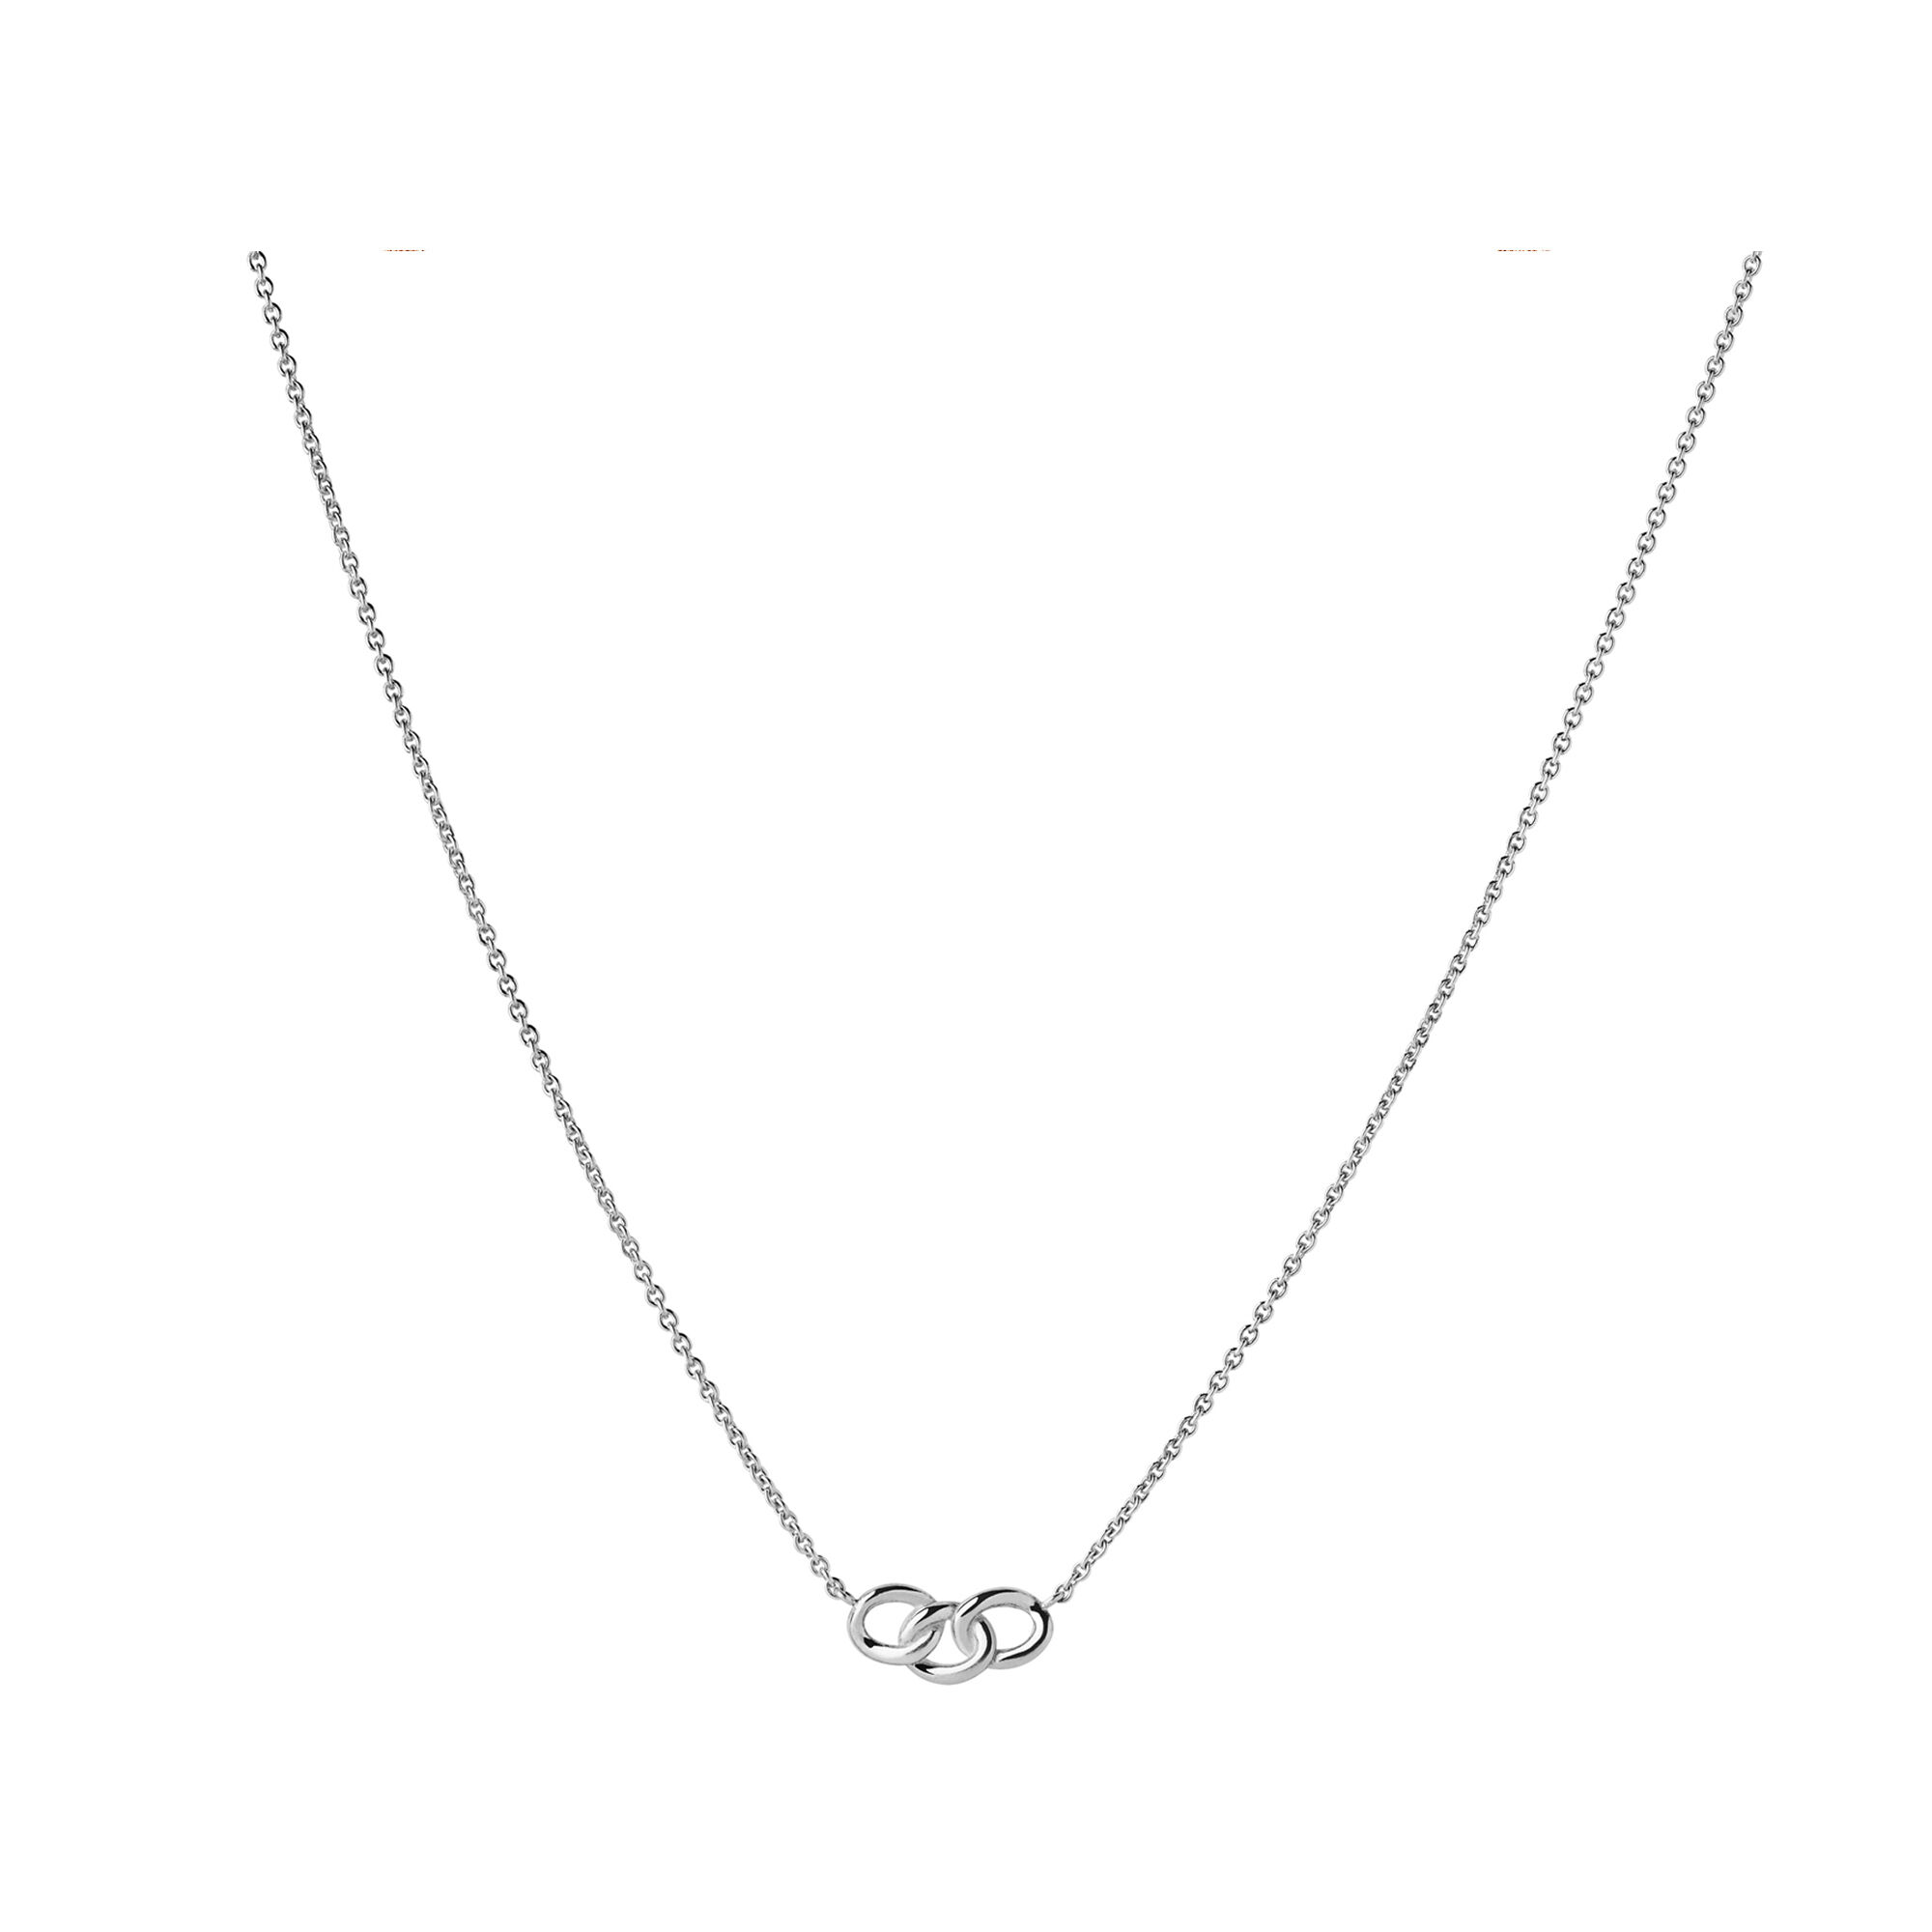 necklace image sterling godsheartforyousterlingsilvernecklace dayspring for silver you s heart god